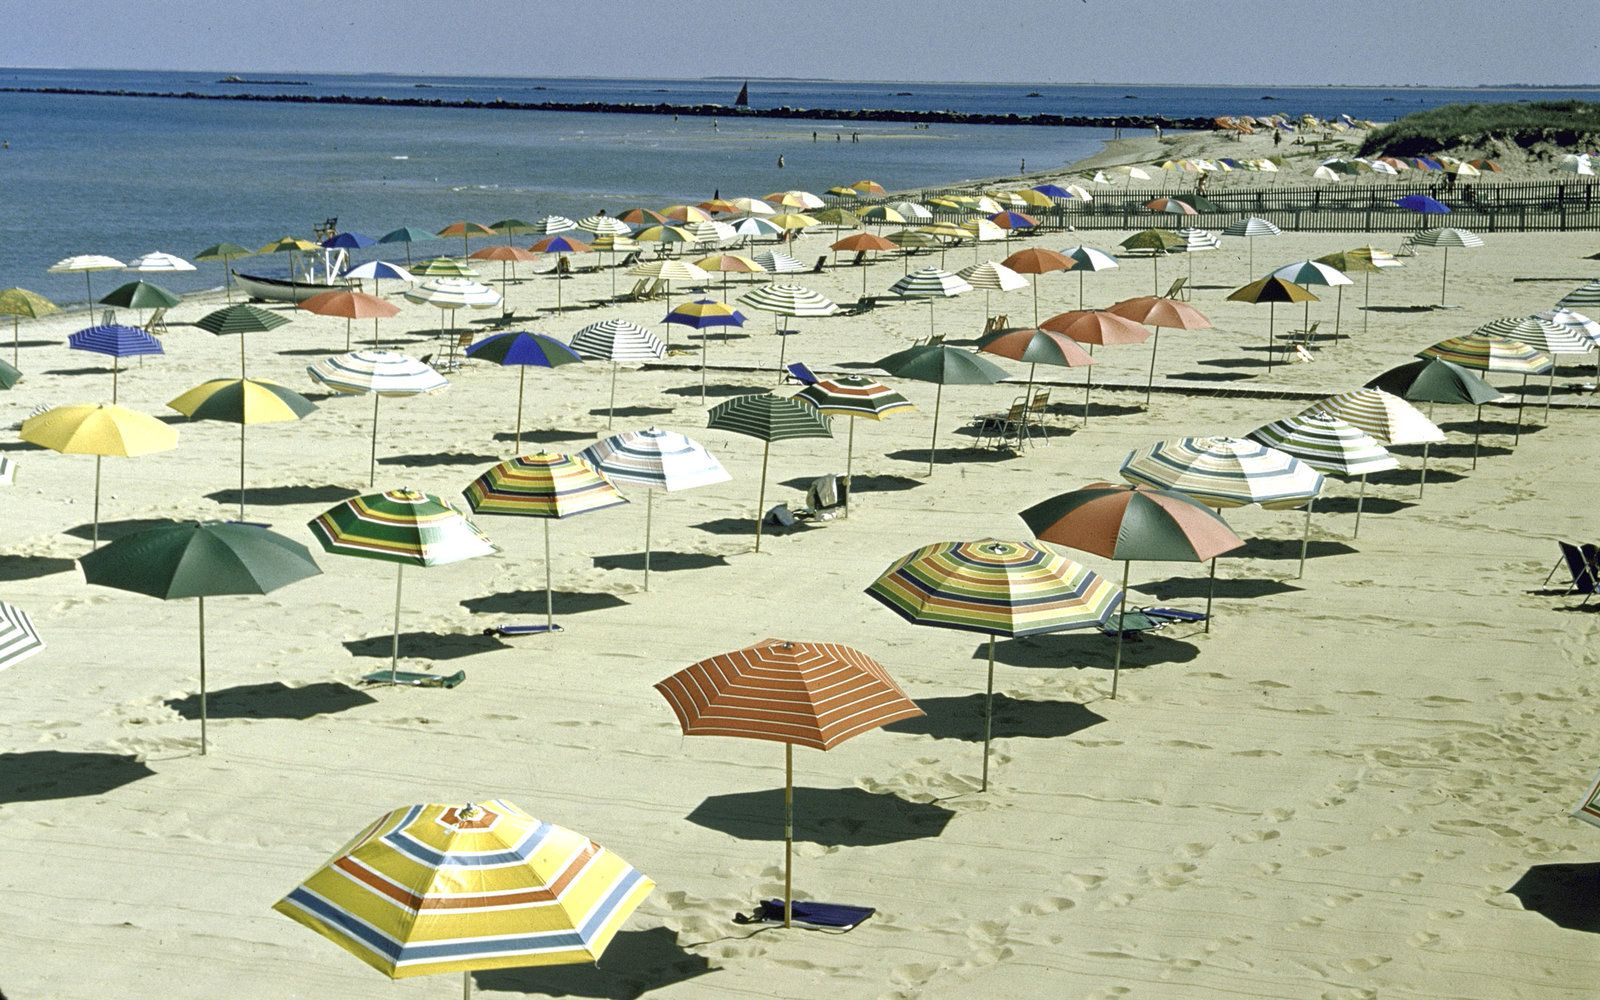 Nantucket Beach Chair Company Best Posture Office Uniform Rows Of Colorful Umbrellas Await Beachgoers